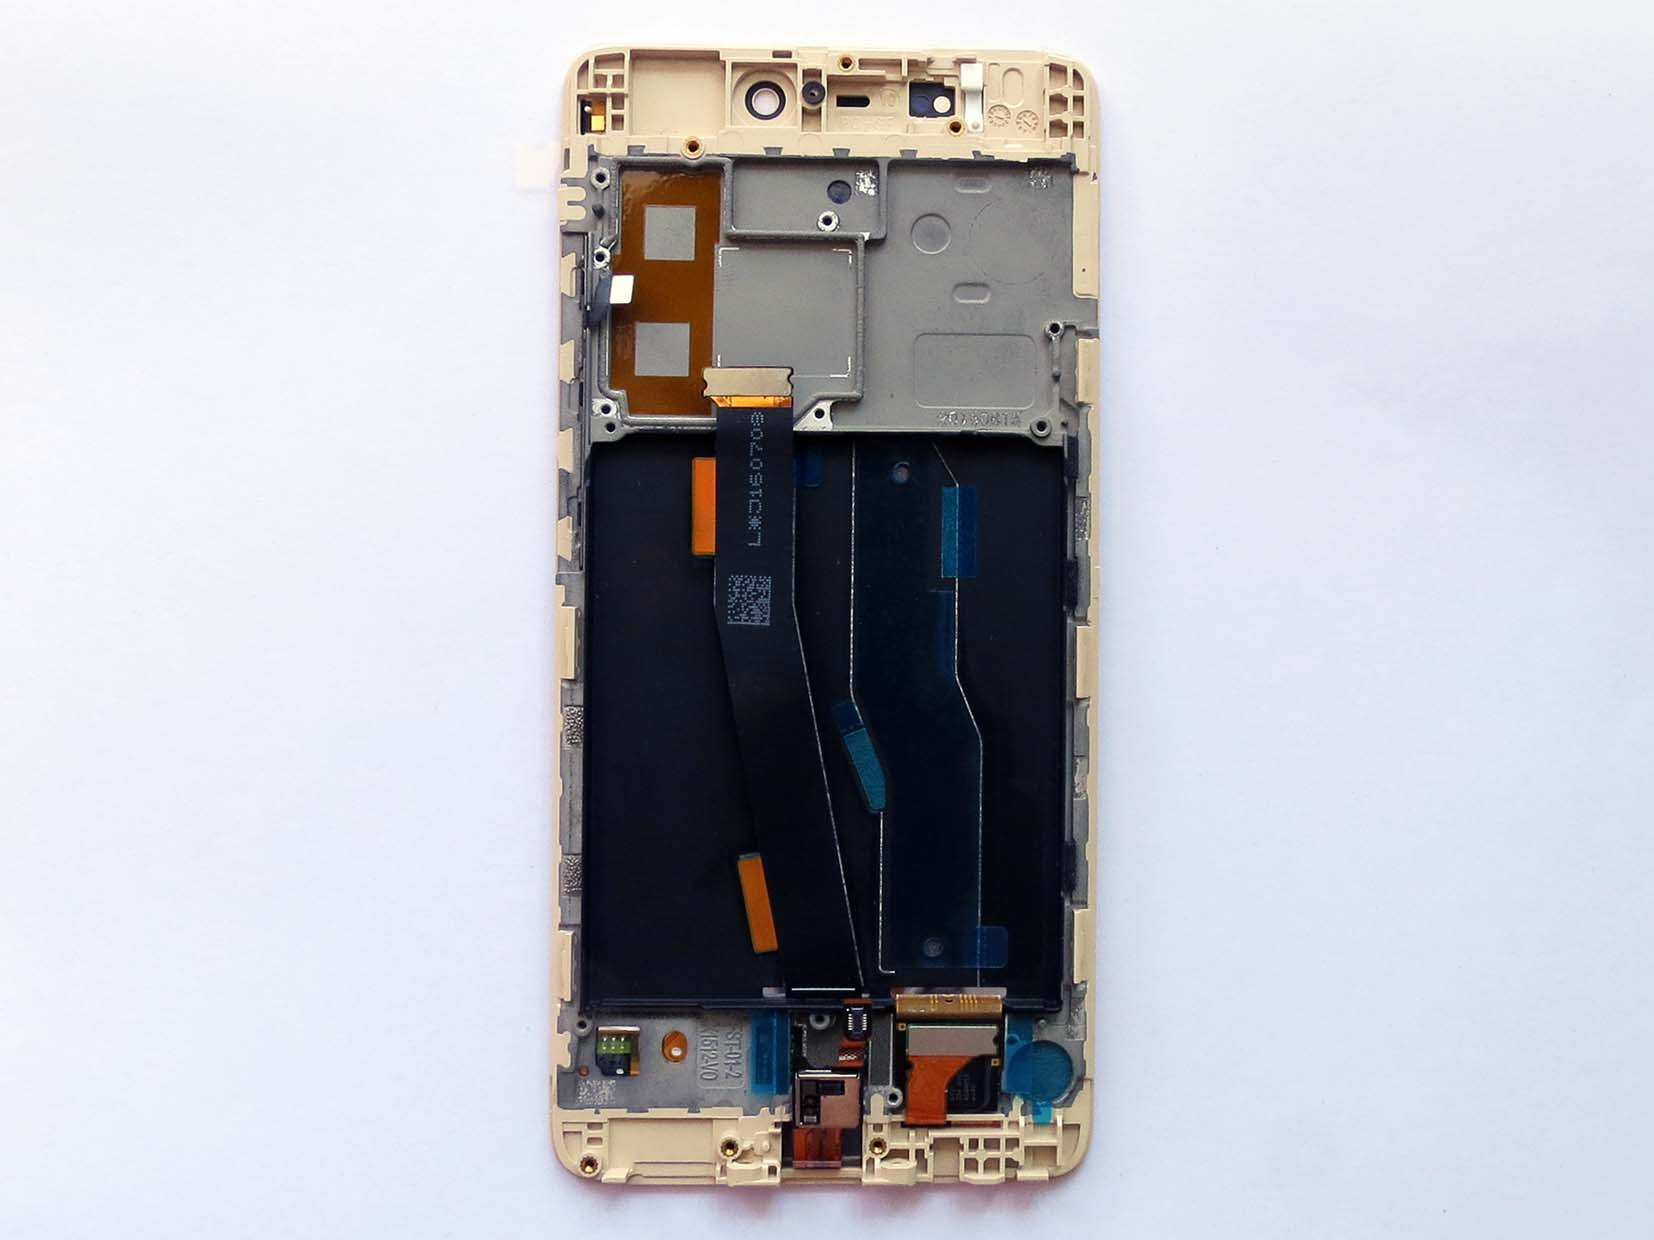 Original Complete screen with front housing for xiaomi 5s Mi 5s - Gold